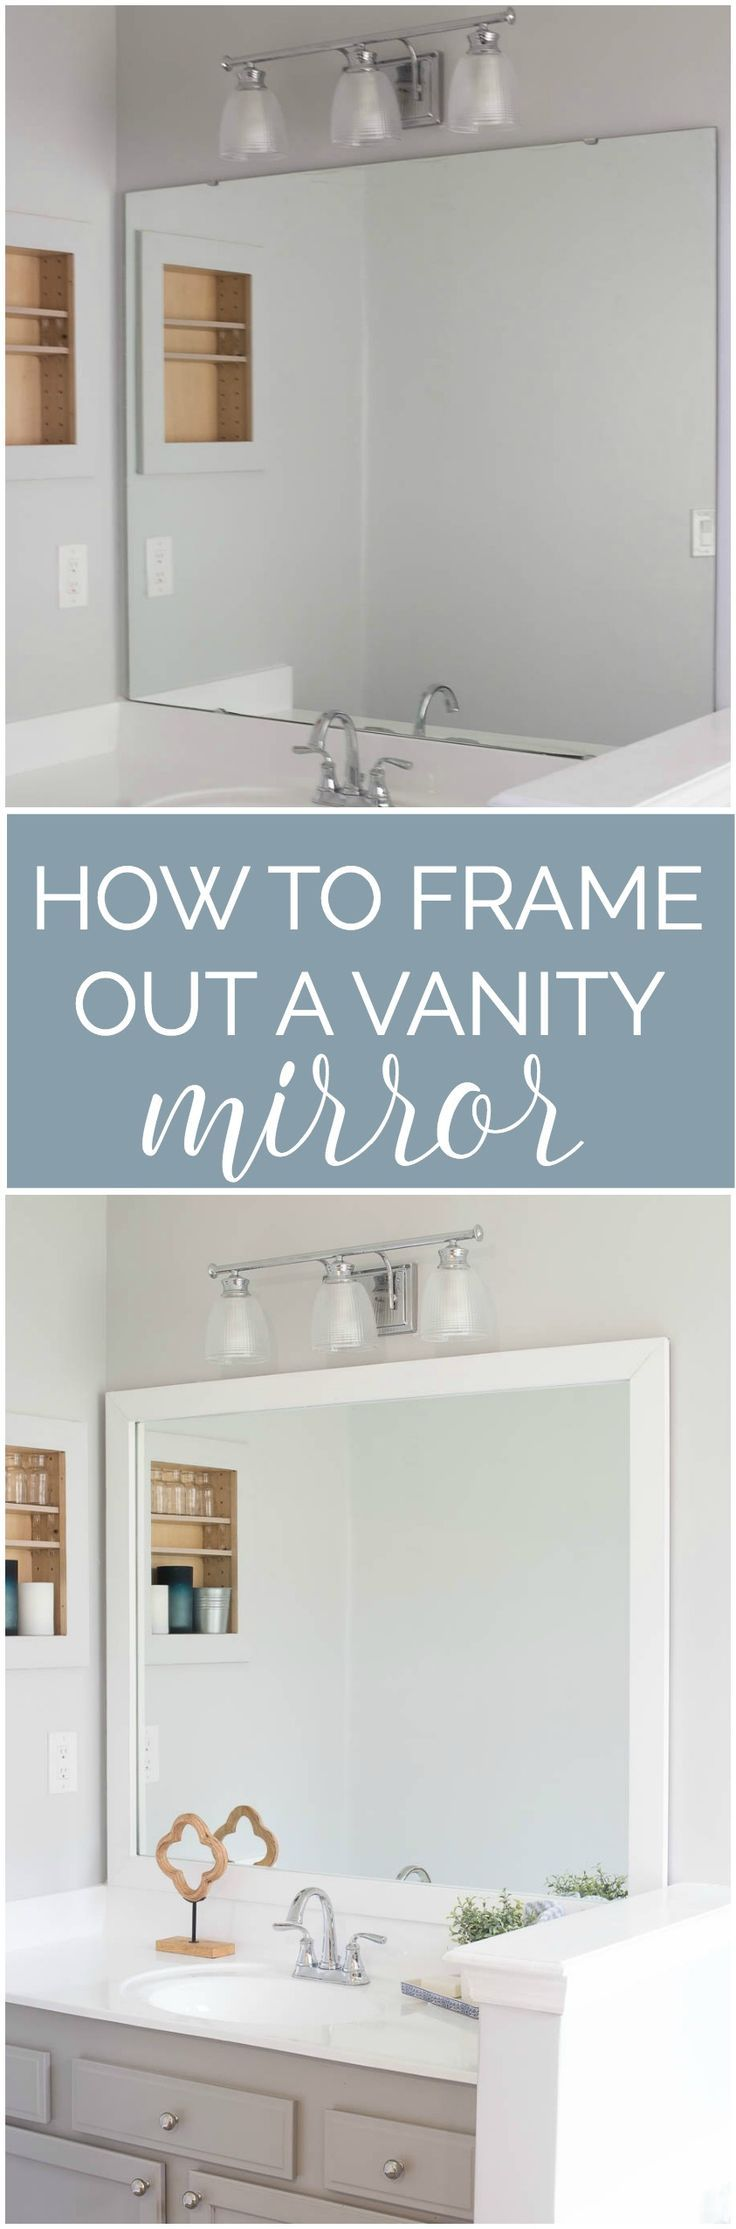 How to Frame a Bathroom Mirror - Easy DIY project | Amazing DIY and ...